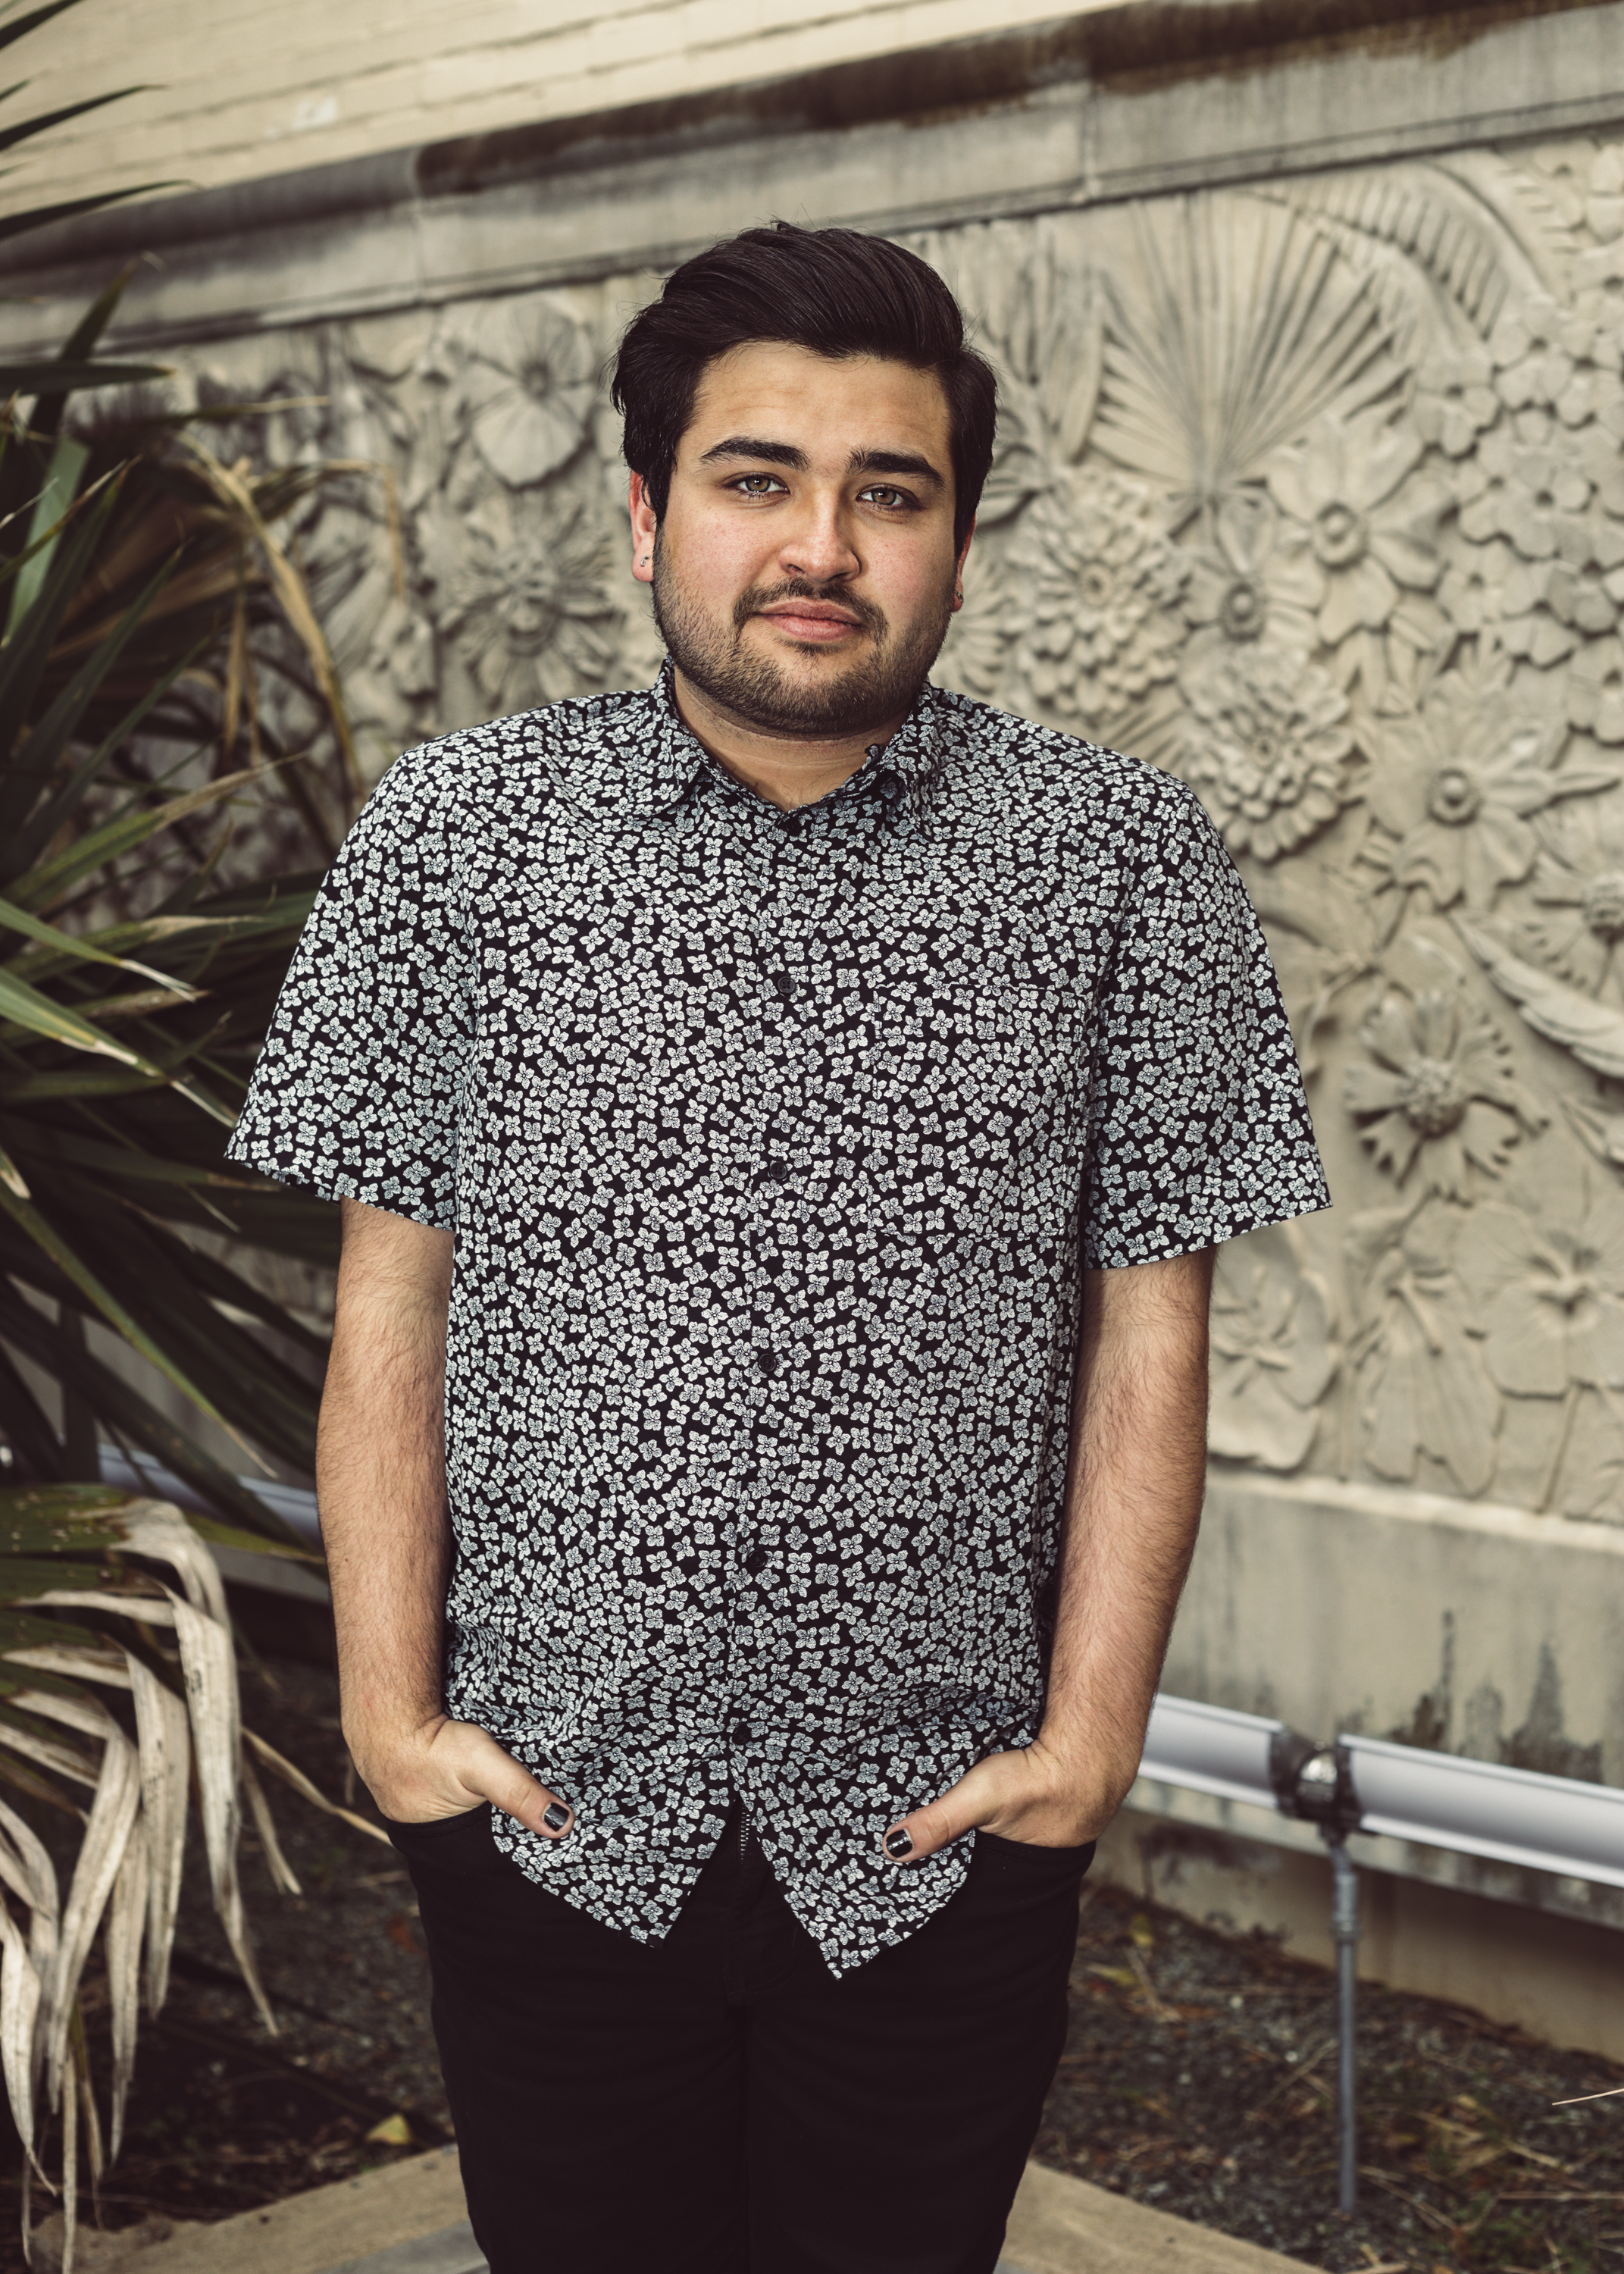 TOMAS PADRON //  A native Floridian, Tomas has always found his home in music. After being involved in the a cappella circuit for two years, Tomas has come to the forefront of the scene, leading his collegiate group, License to Trill, to a national stage. He enjoys helping craft FTR's intimate, cozy, and vulnerable sound.